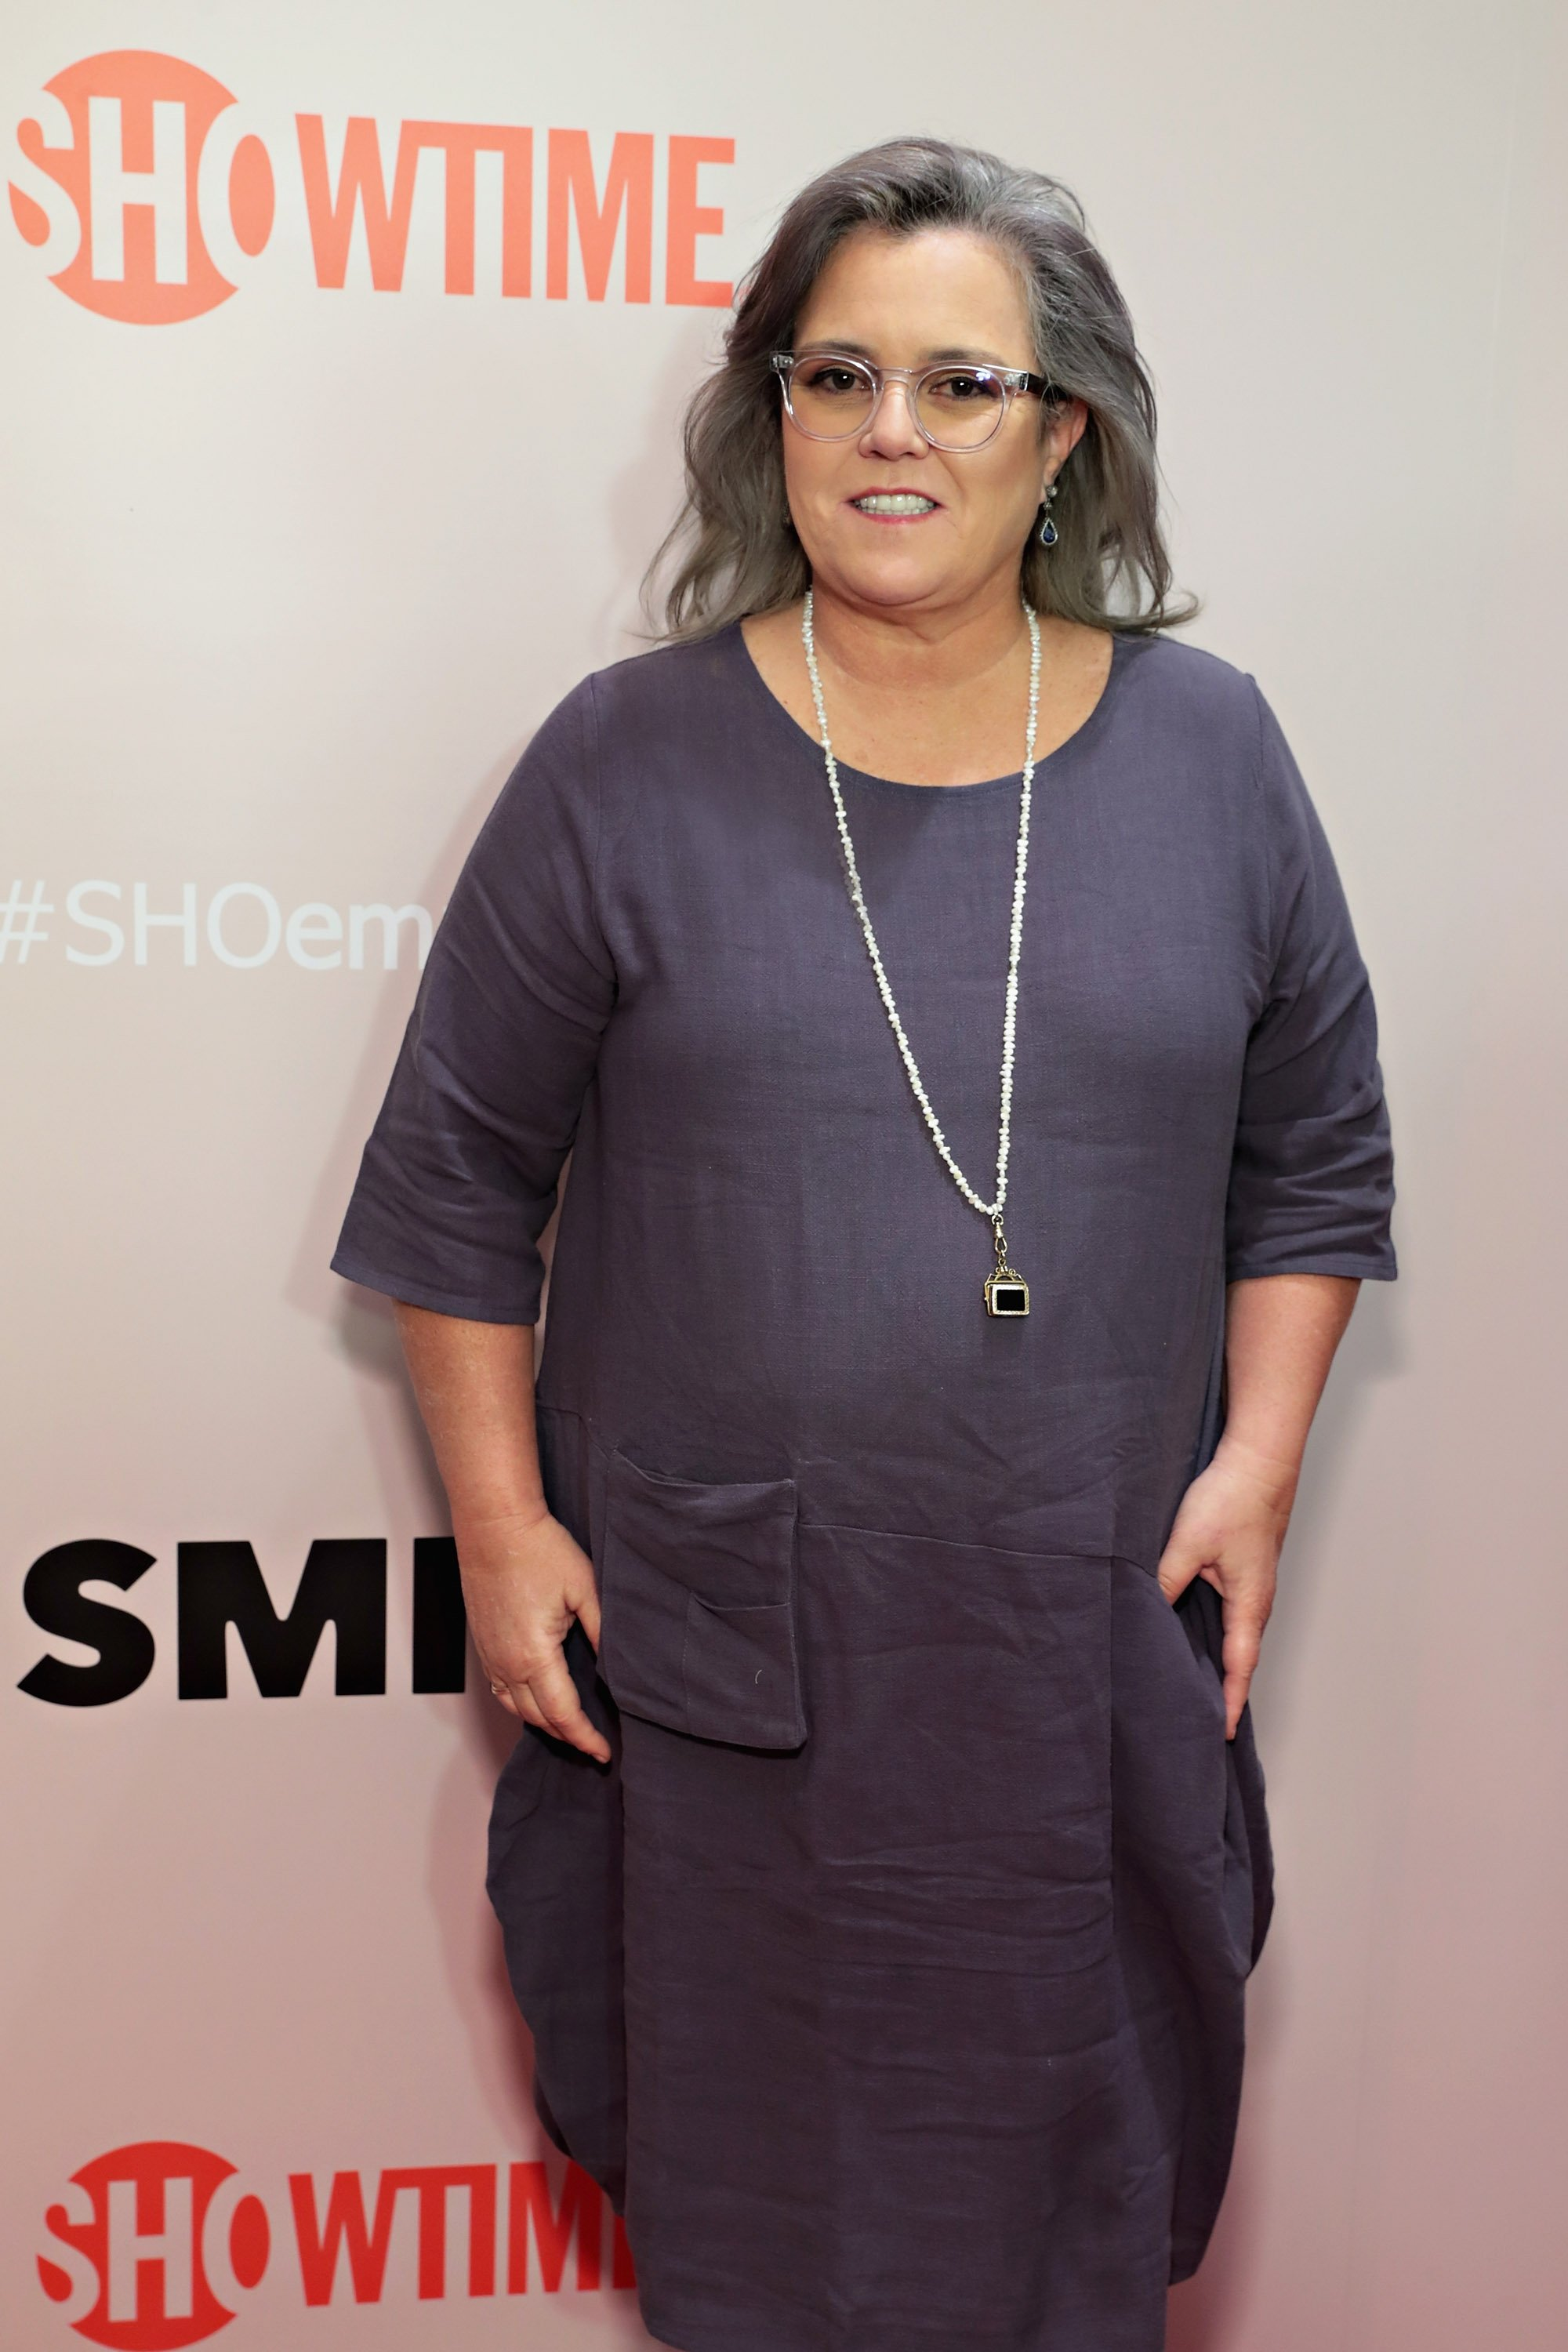 Rosie O'Donnell attends the Showtime Emmy FYC Screening Of SMILF at The Whitney in 2018 | Photo: Getty Images